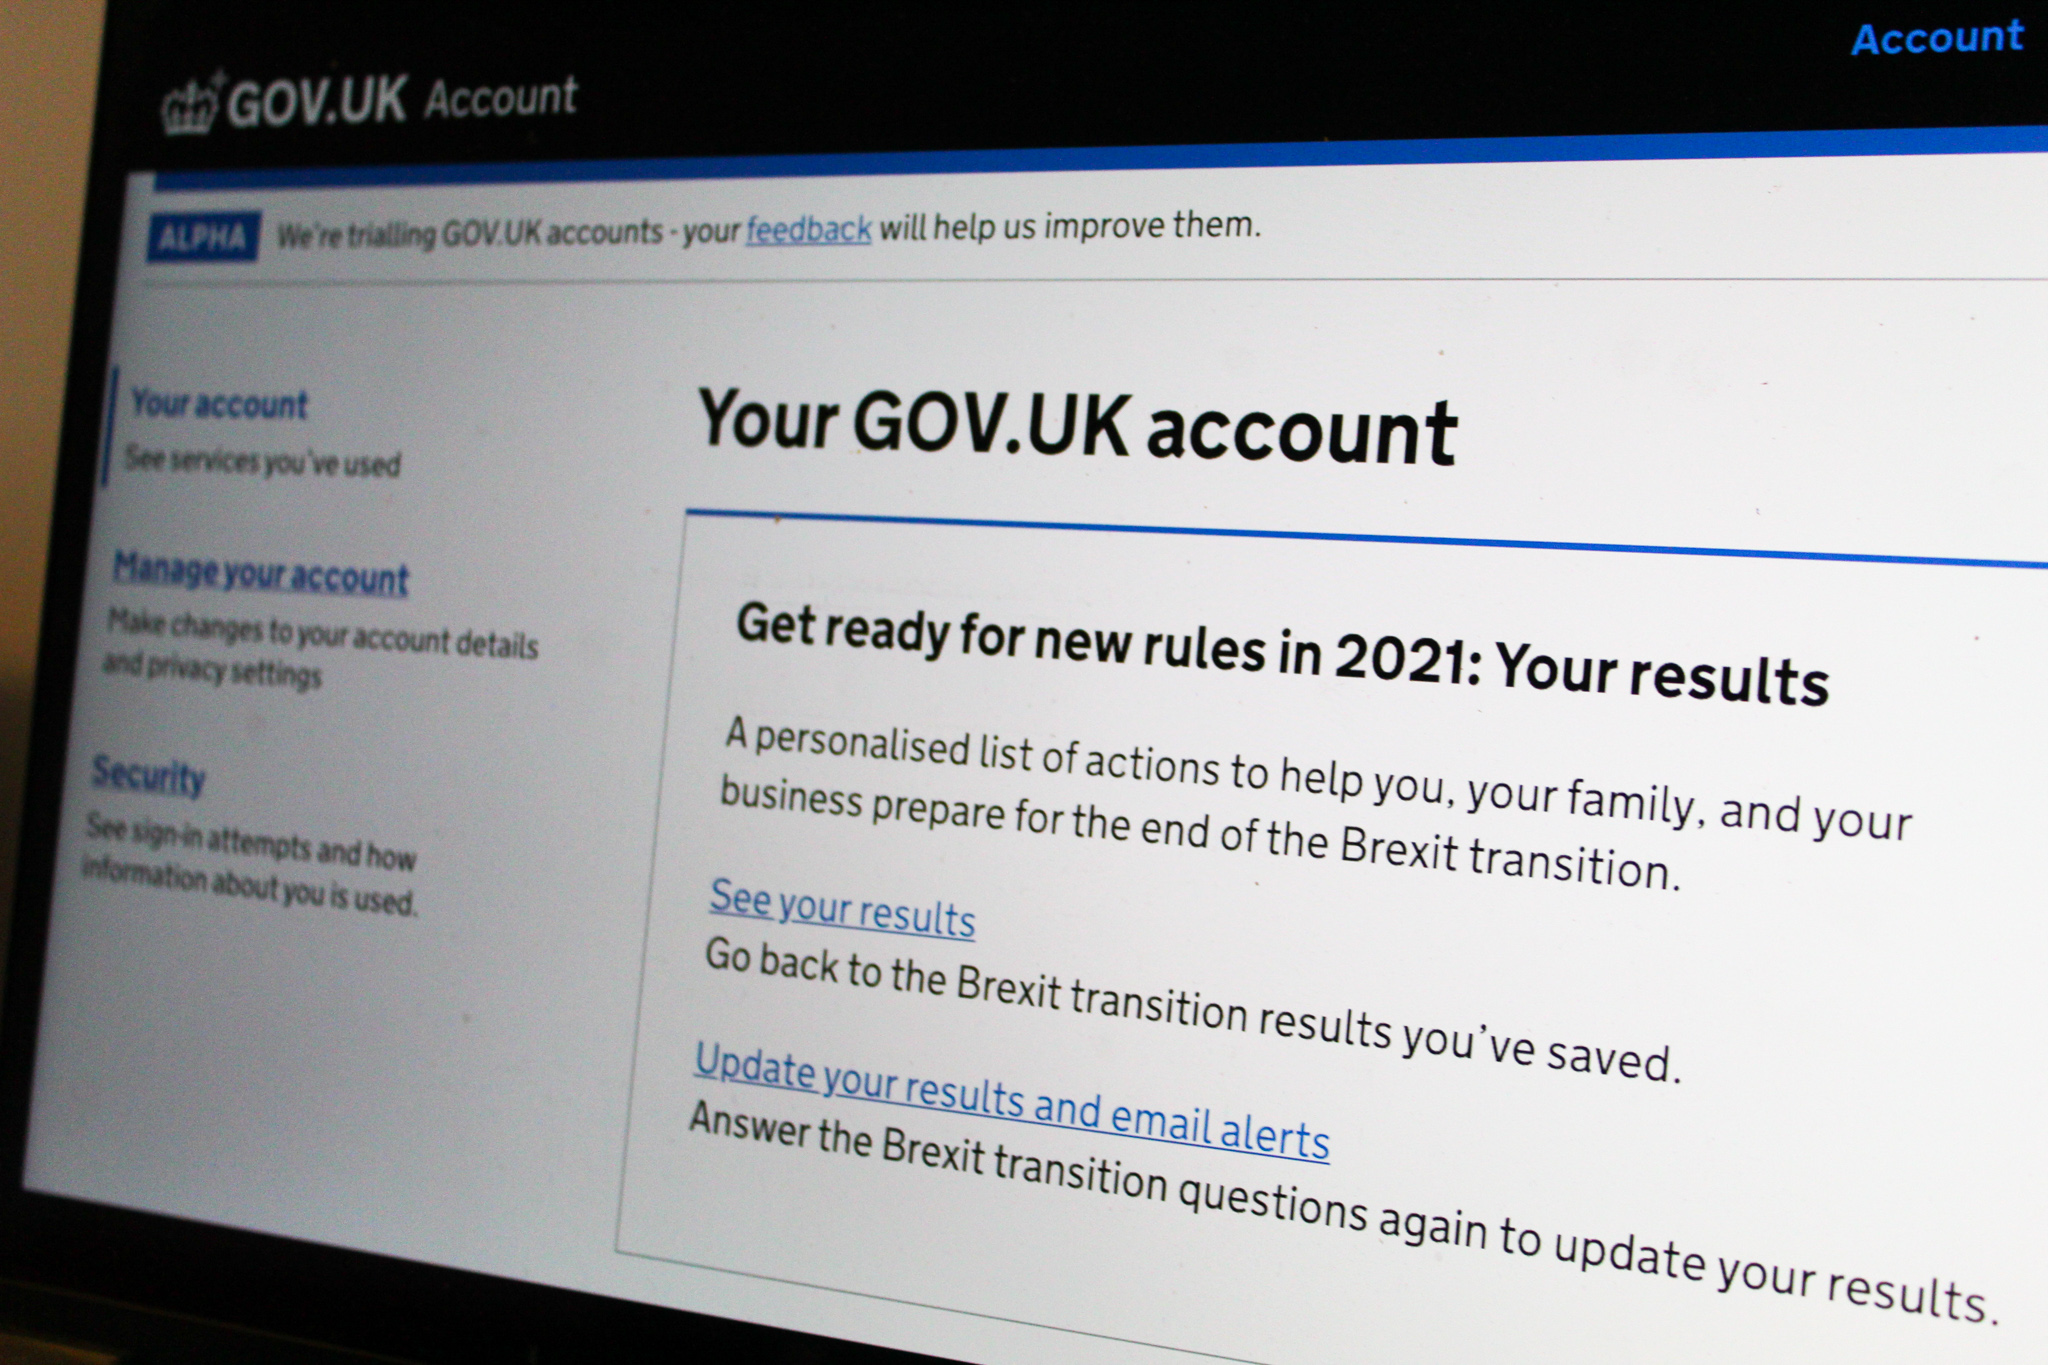 The technical architecture behind a GOV.UK account